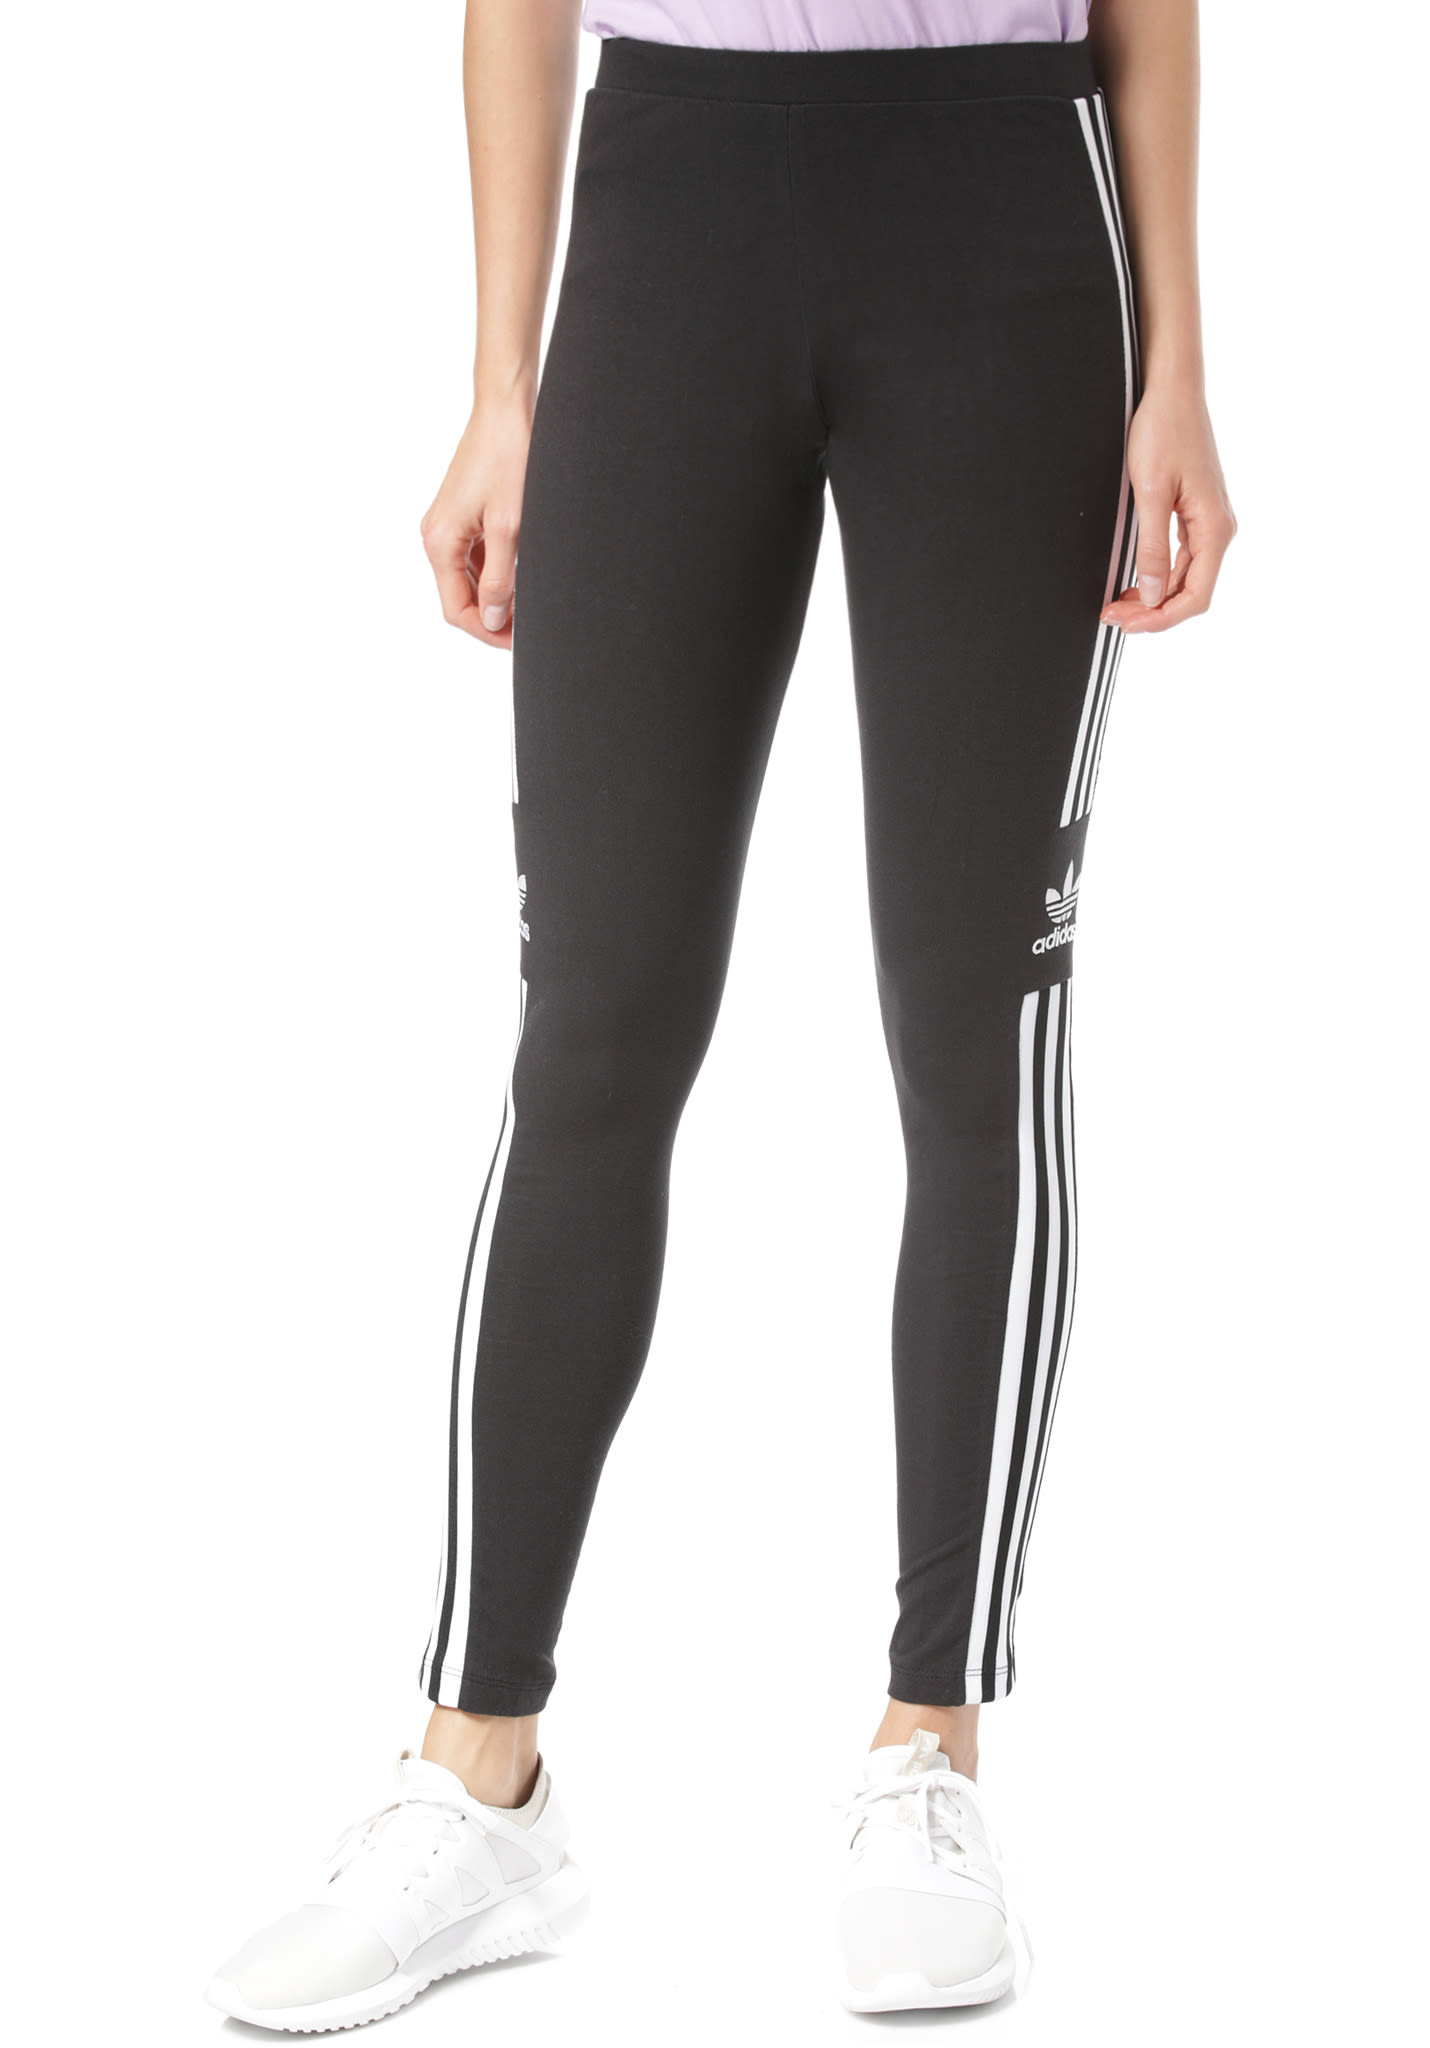 b01e0632d9369 ADIDAS ORIGINALS Trefoil - Leggings for Women - Black - Planet Sports